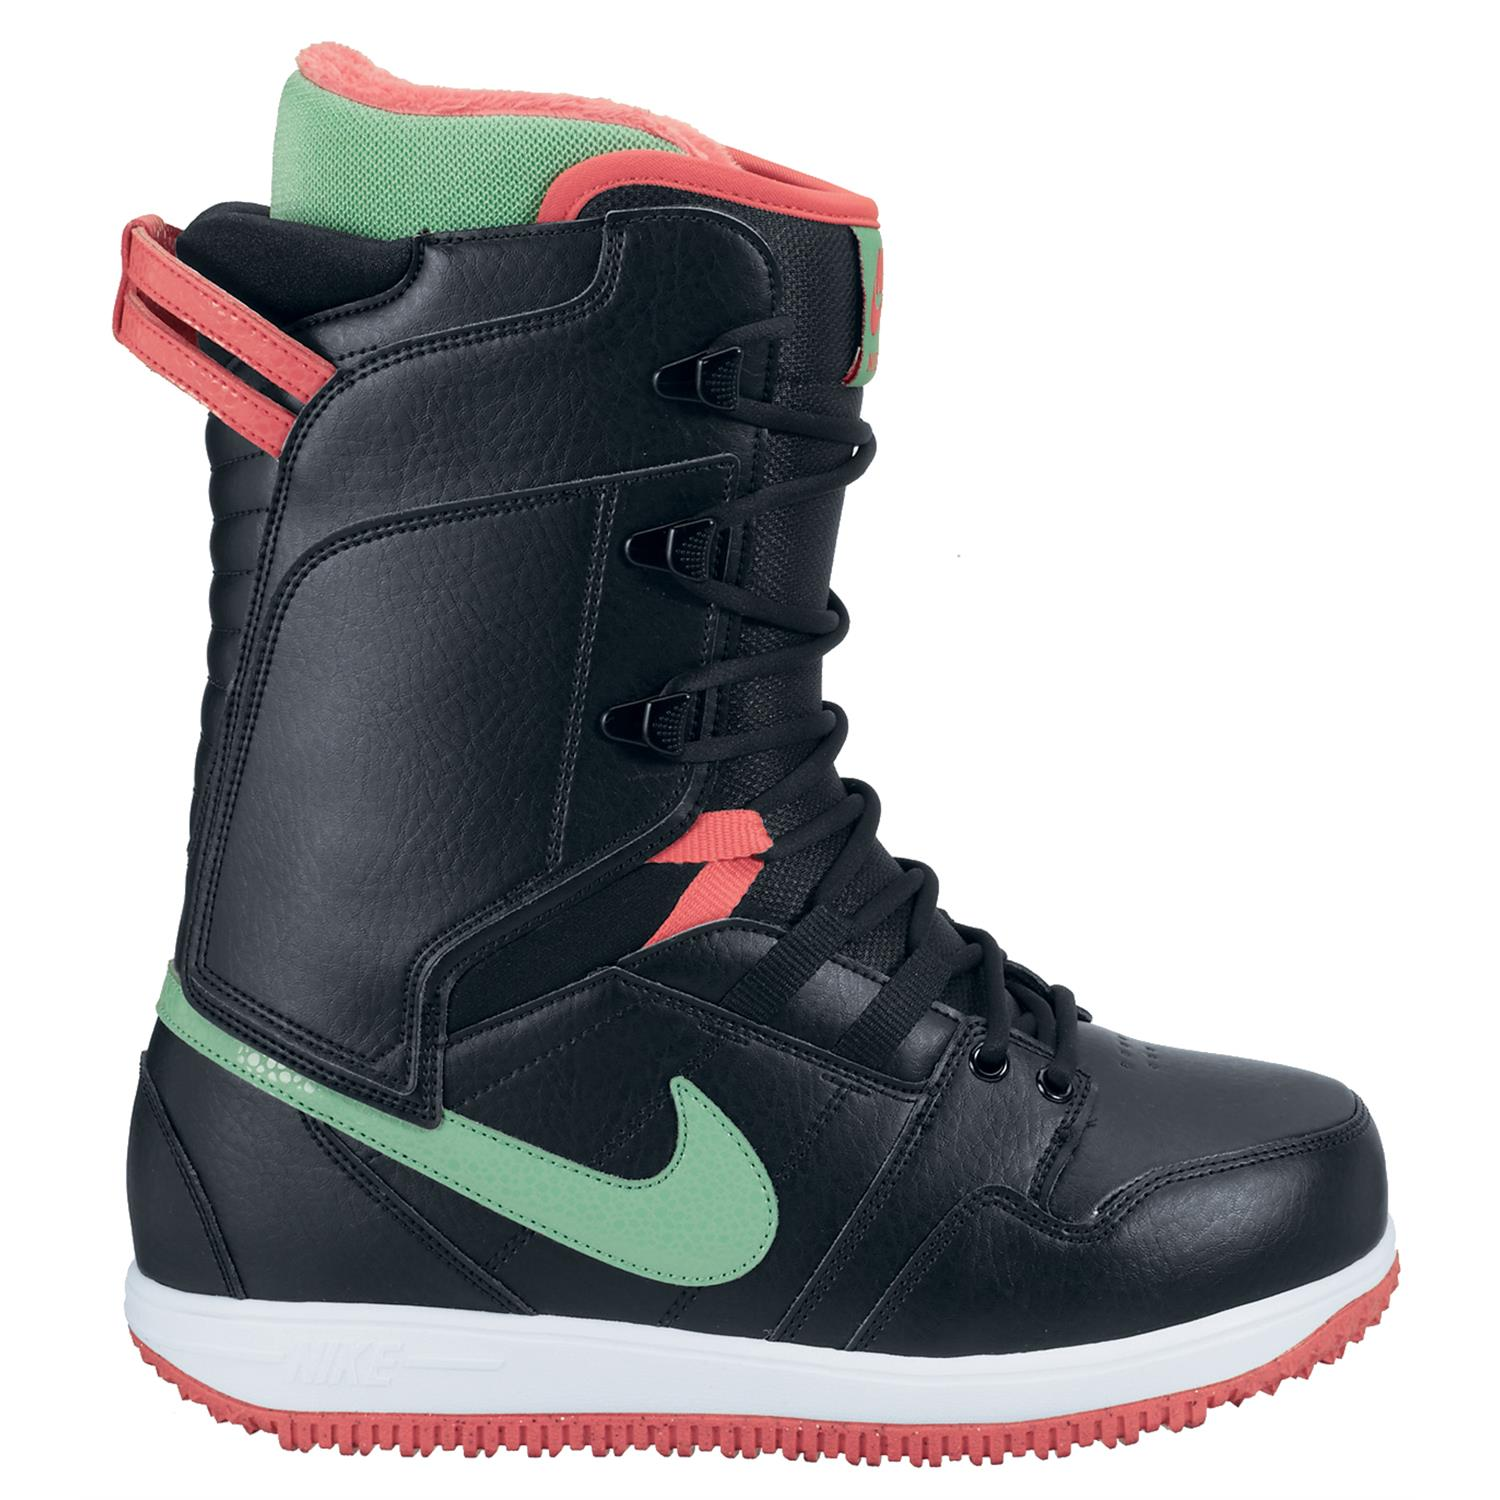 Perfect Good Things Are Being Said About Nikes Boots This Season, And That Includes This Femalespecific Effort  The Nike Vapen Womens Snowboard Boot The Vapen Is A Comfortable Allrounder Designed To Ride Anything, Anywhere Its Cribbed A